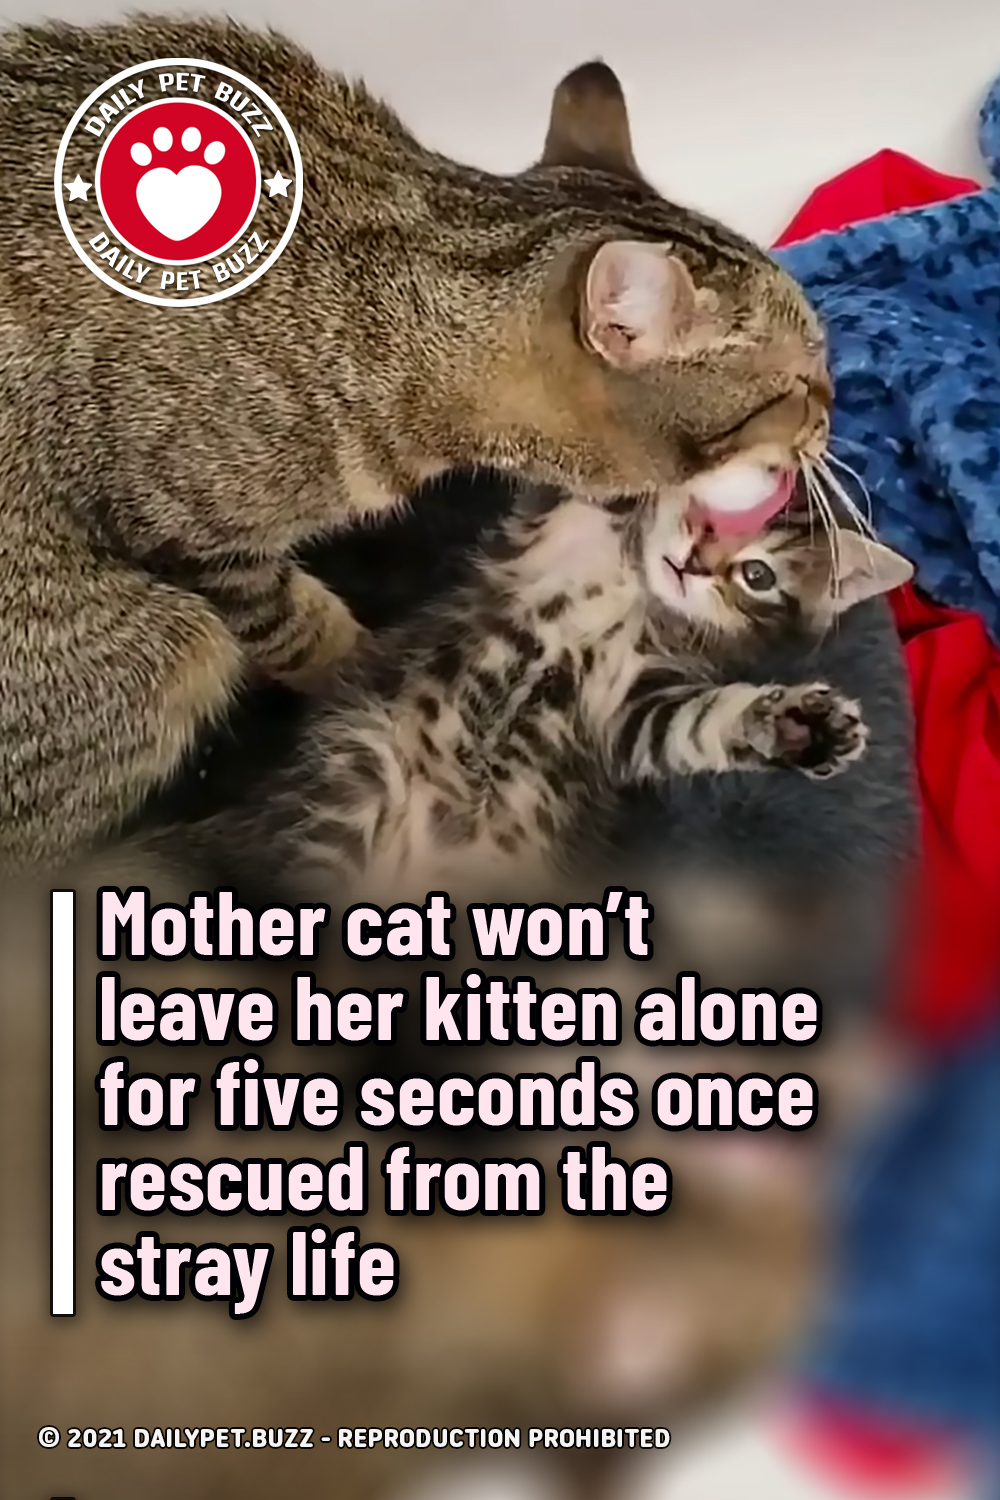 Mother cat won't leave her kitten alone for five seconds once rescued from the stray life